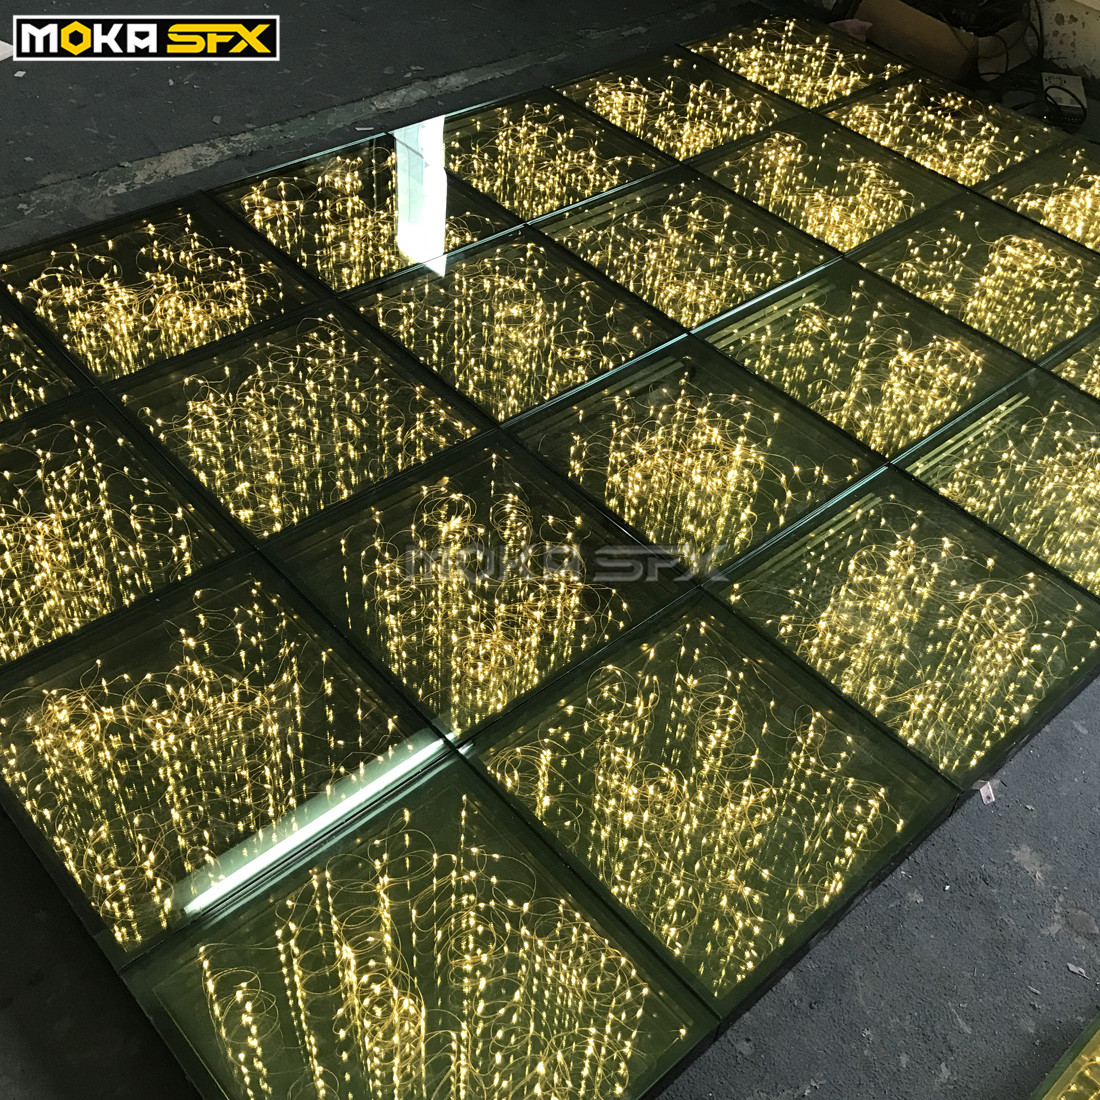 40pcs/lot 3D Starry Gold dance floor with SD controller and power supply Nightclub Disco Party led dancing floor 50x50 per panel